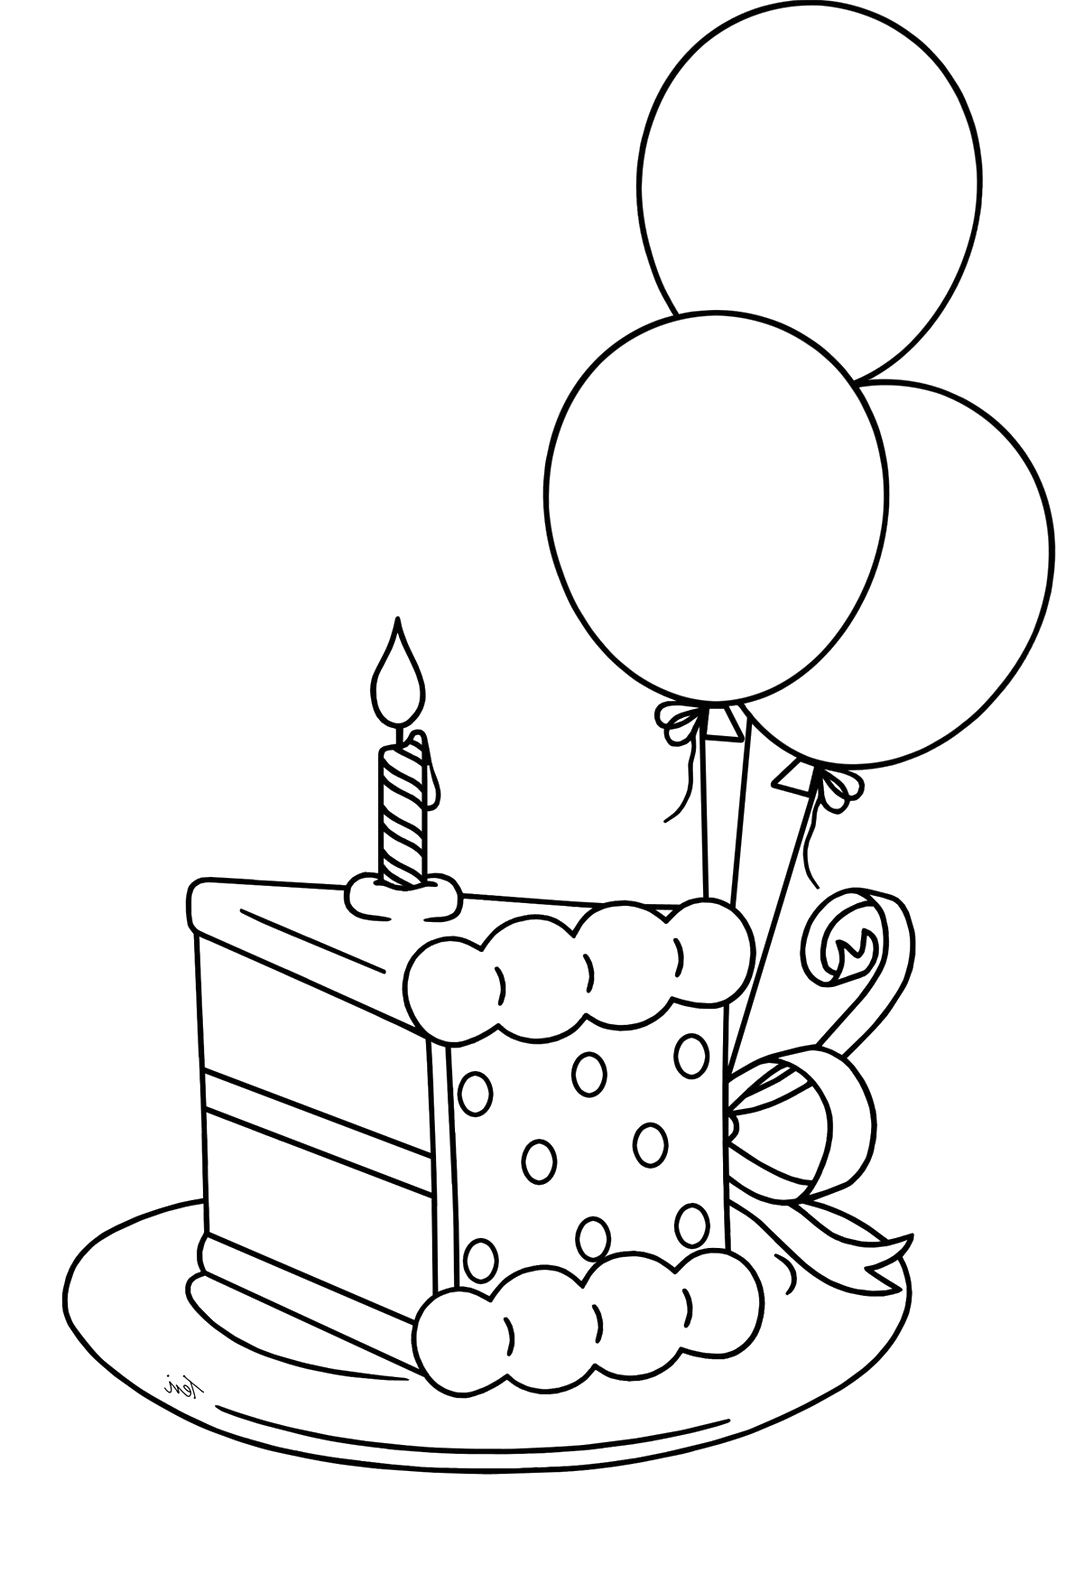 Slice The Cake That Will Be Packed Birthday Coloring Pages Mandala VorlagenKaffee Und KuchenZeichnungenSchleifenAlles Gute Zum Geburtstag